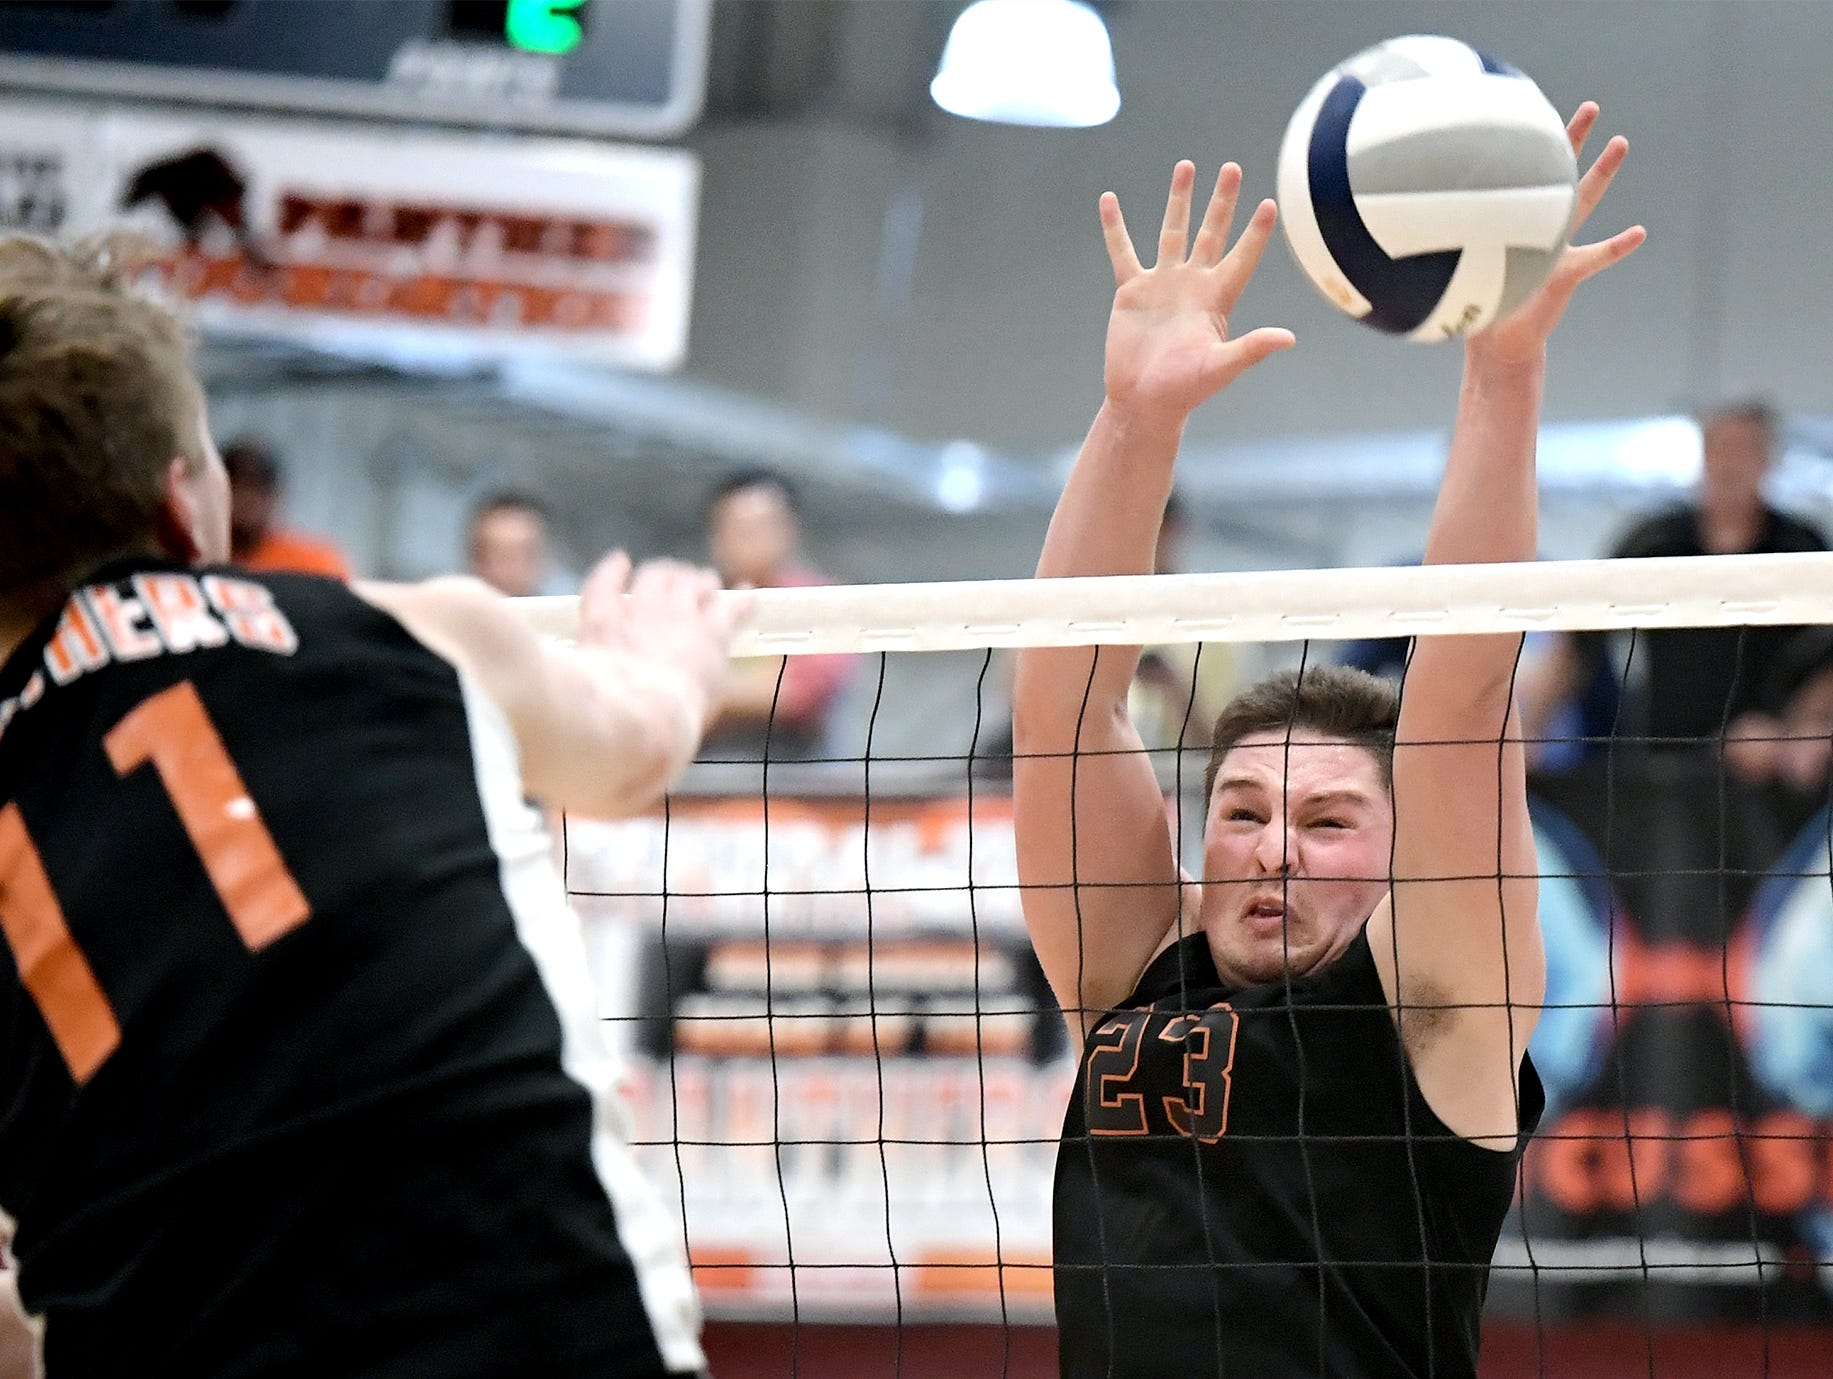 Northeastern's Kyle Williams tries to stop a shot by Central's Braden Richard, left, during action at Central York Tuesday, May 7, 2019. The Bobcats earned the York-Adams League regular-season title with a 3-1 win. Bill Kalina photo